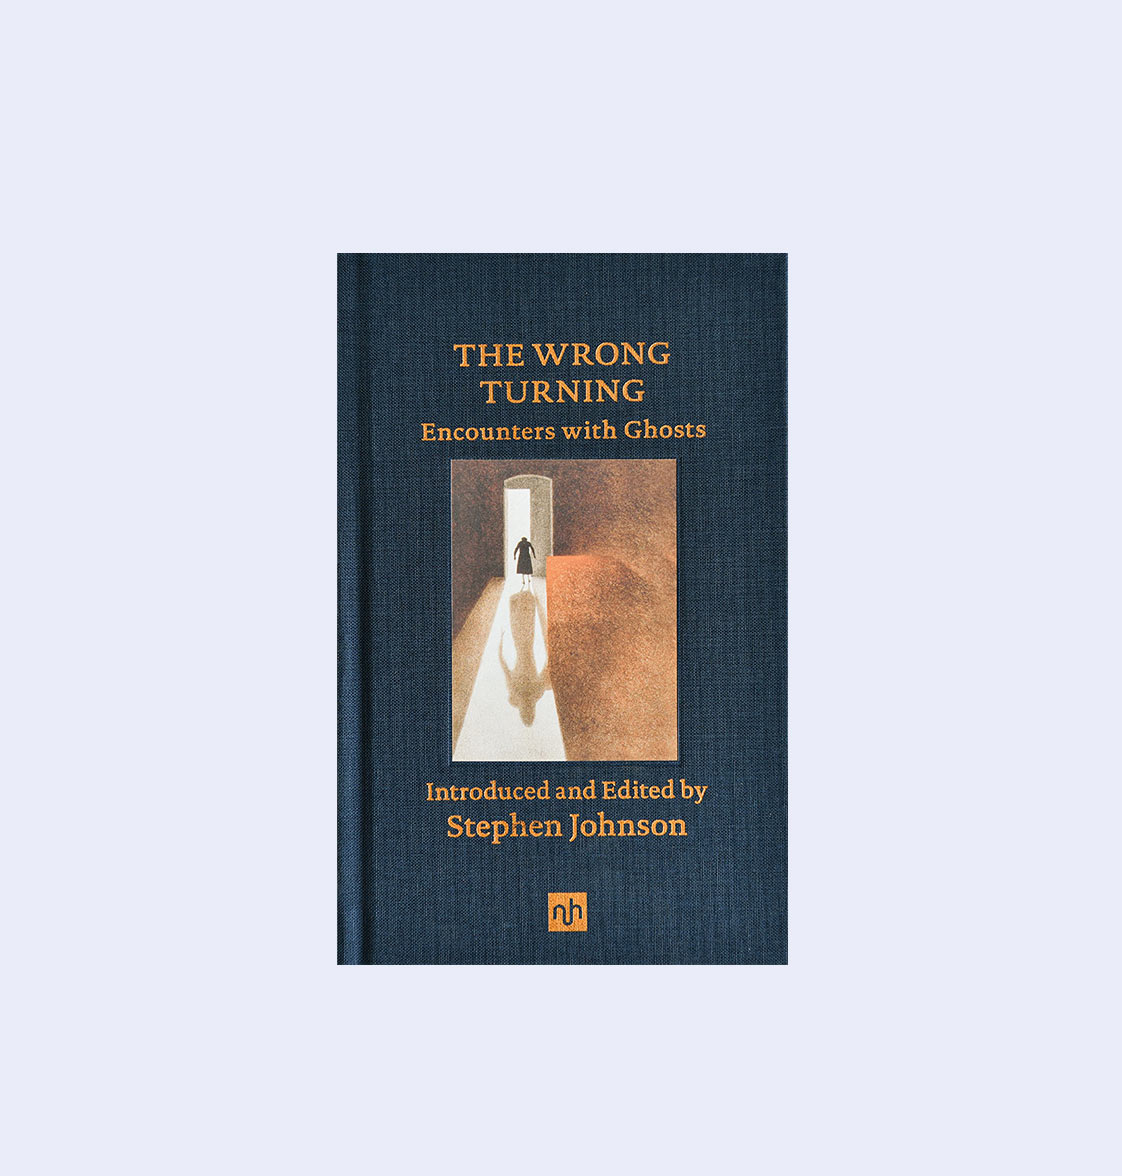 _THE-WRONG-TURNING-Single-Book-Detail